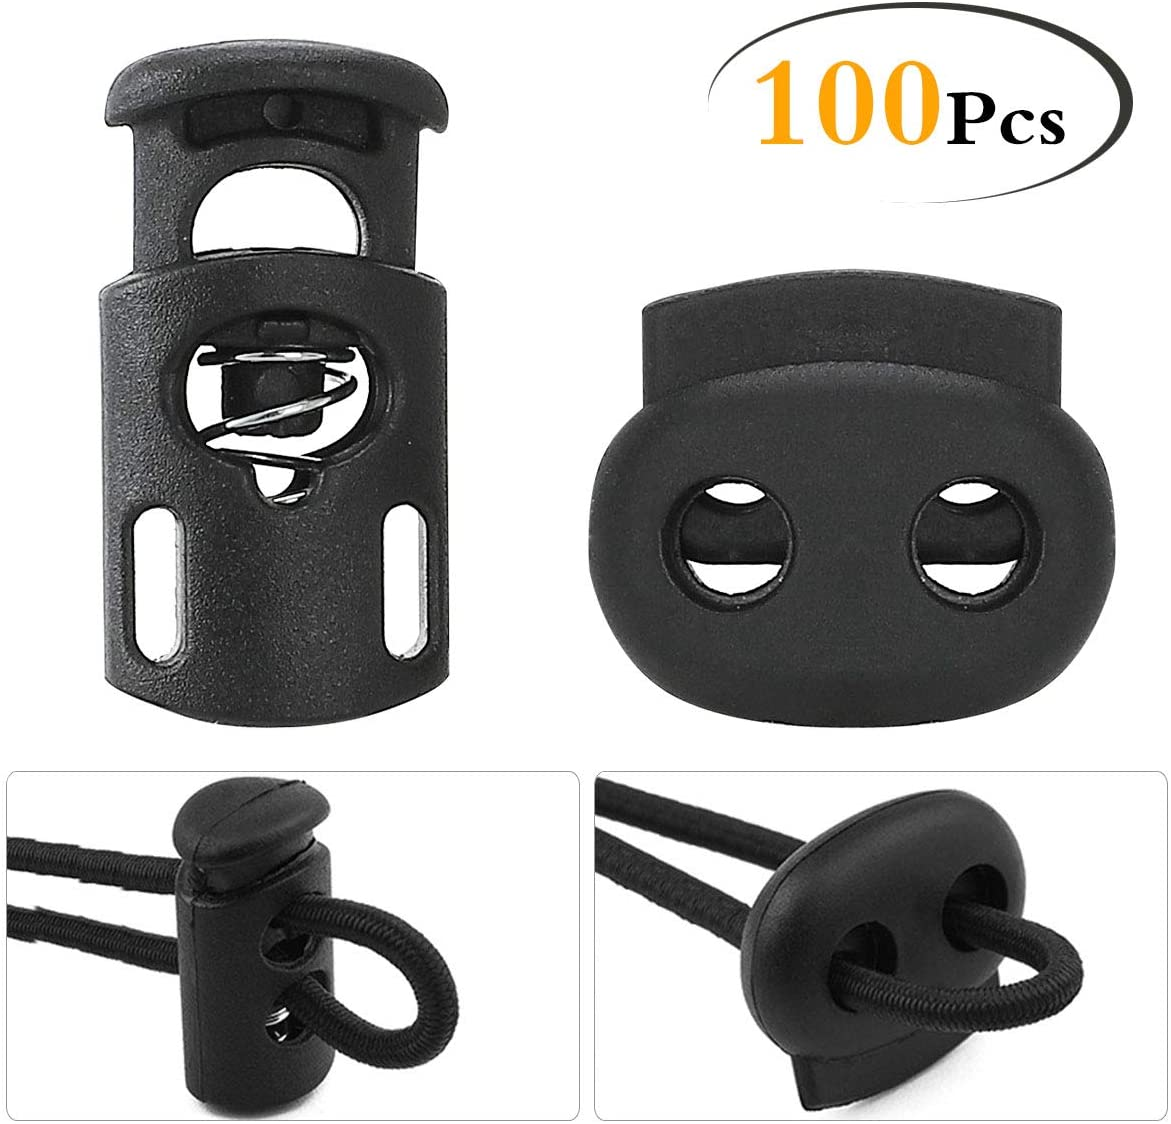 Lebsitey 100pcs Plastic Cord Locks End Spring Stop Toggle STO for Drawstrings, Paracord, Bags, Shoelaces, Clothing, More (50 Double-Hole, 50 Single-Hole, Black)